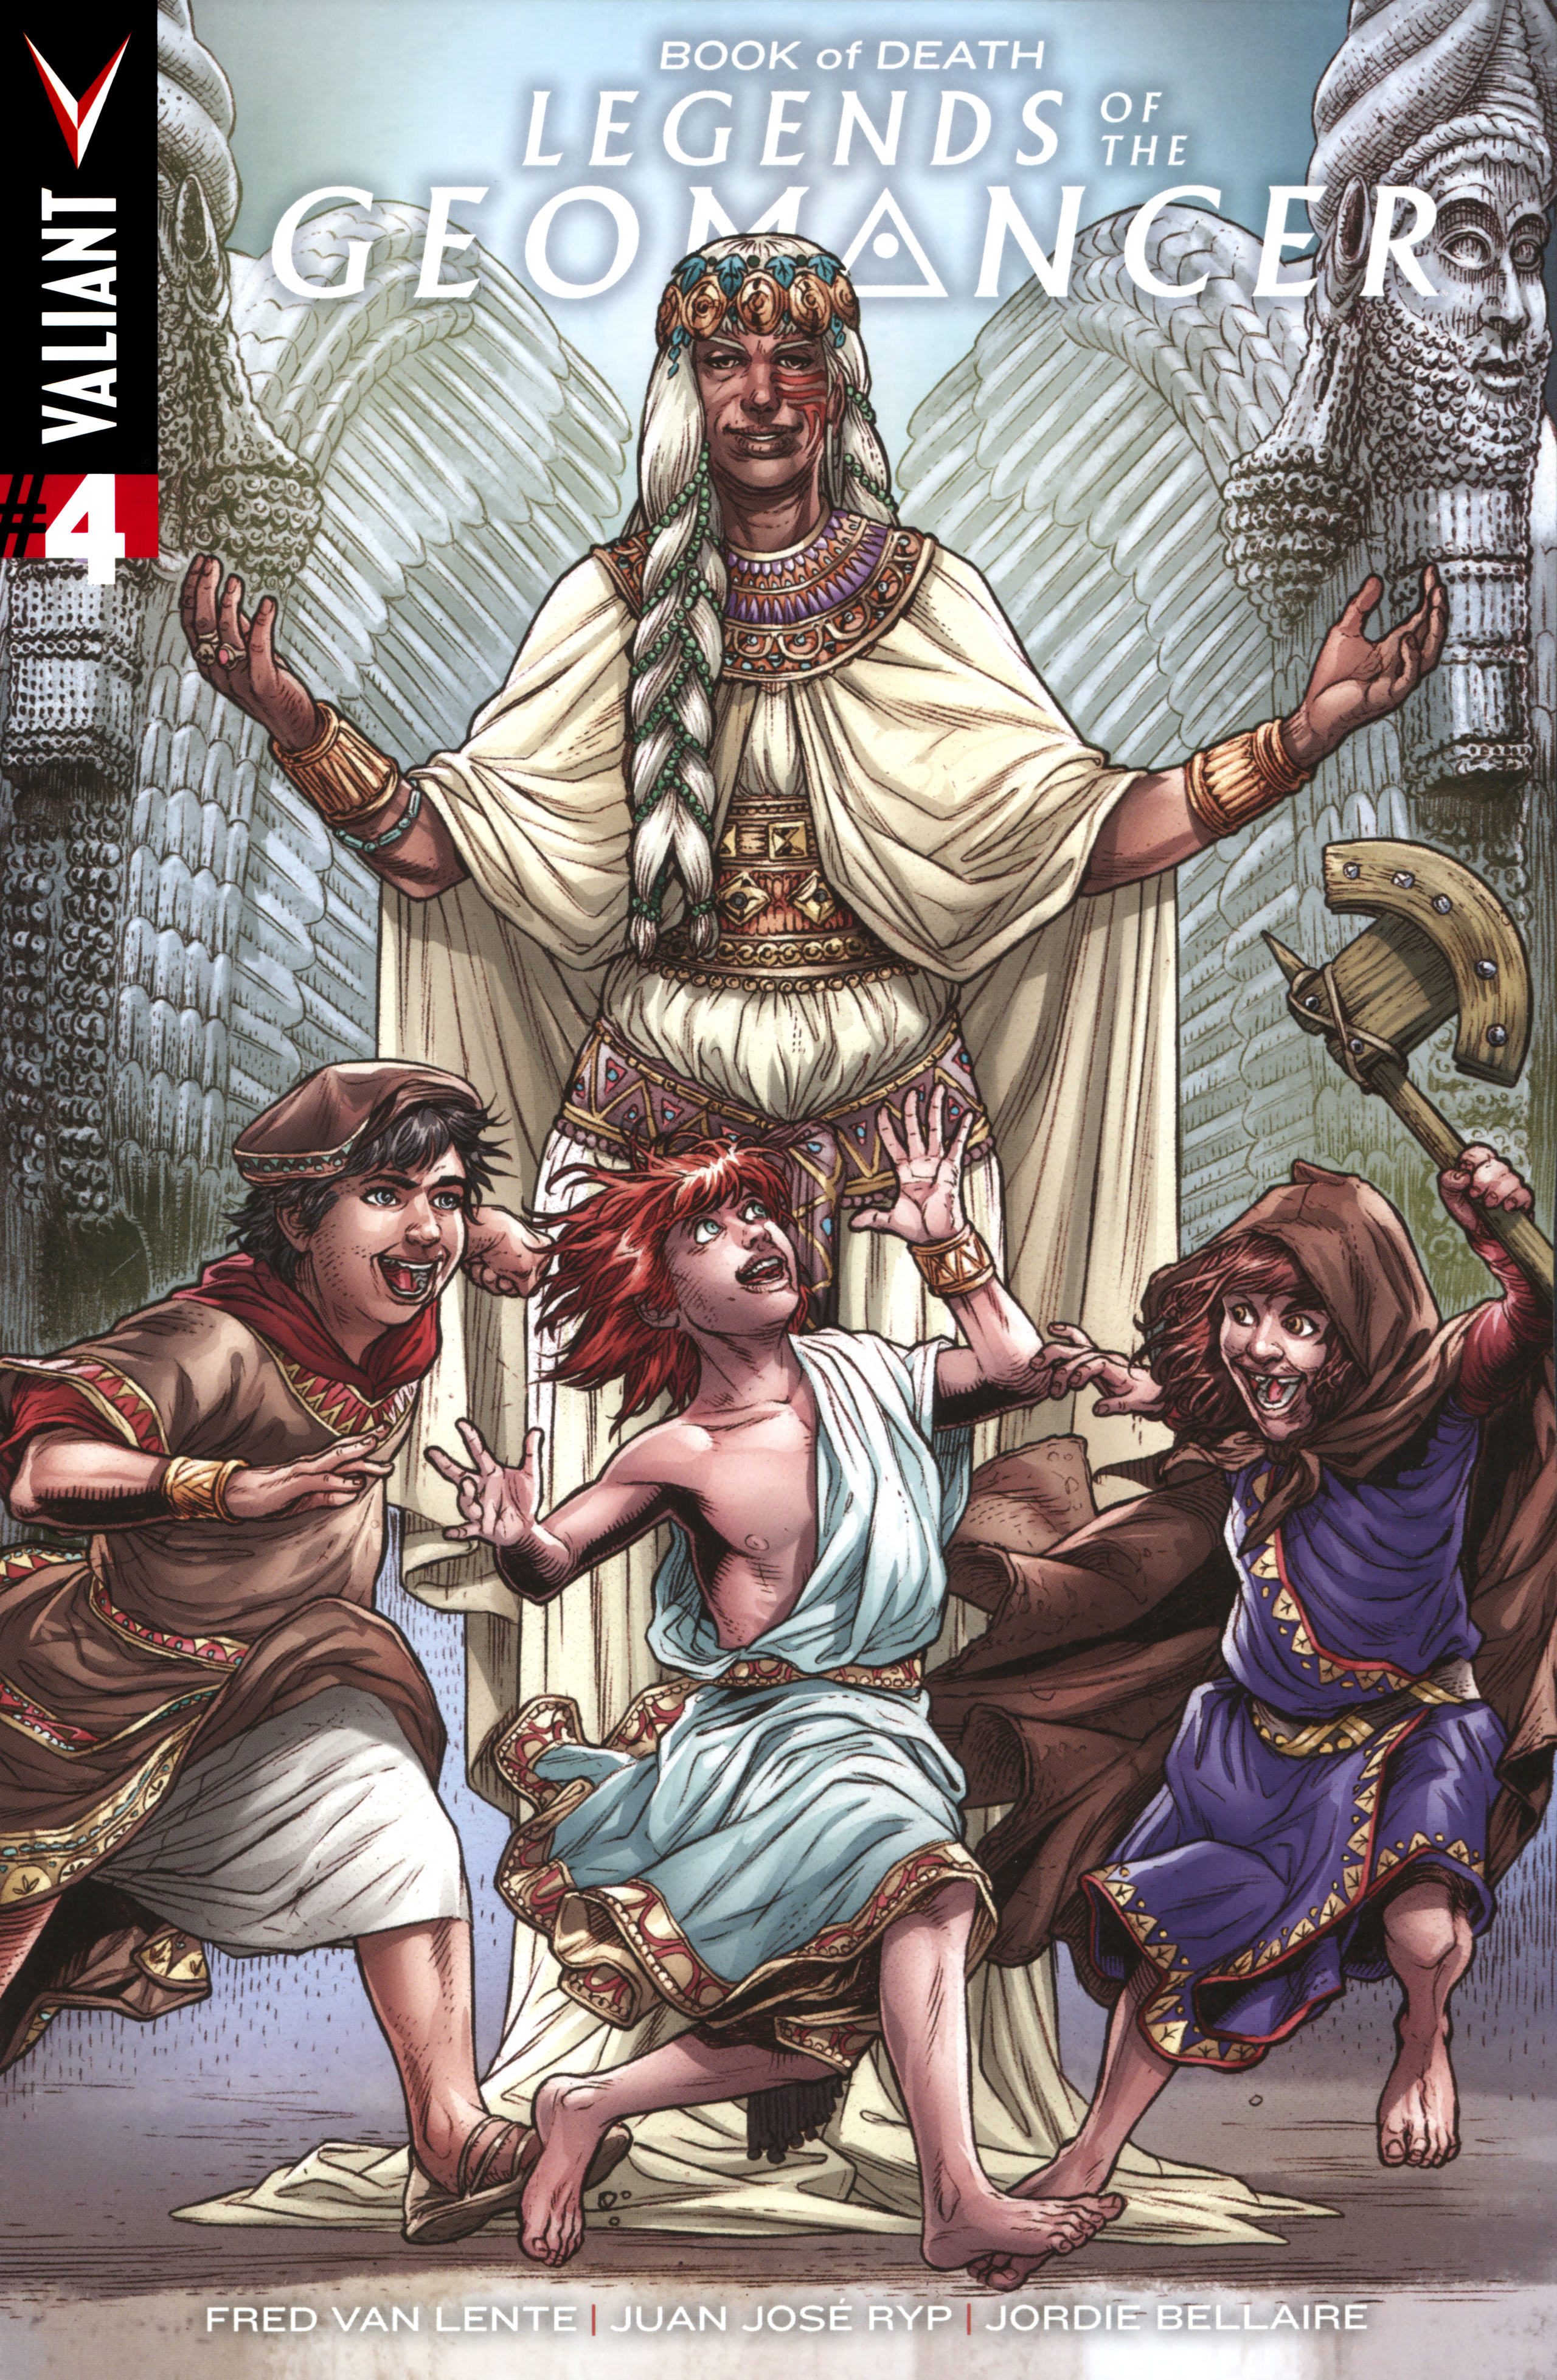 Book of Death Legends of the Geomancer Issue 4